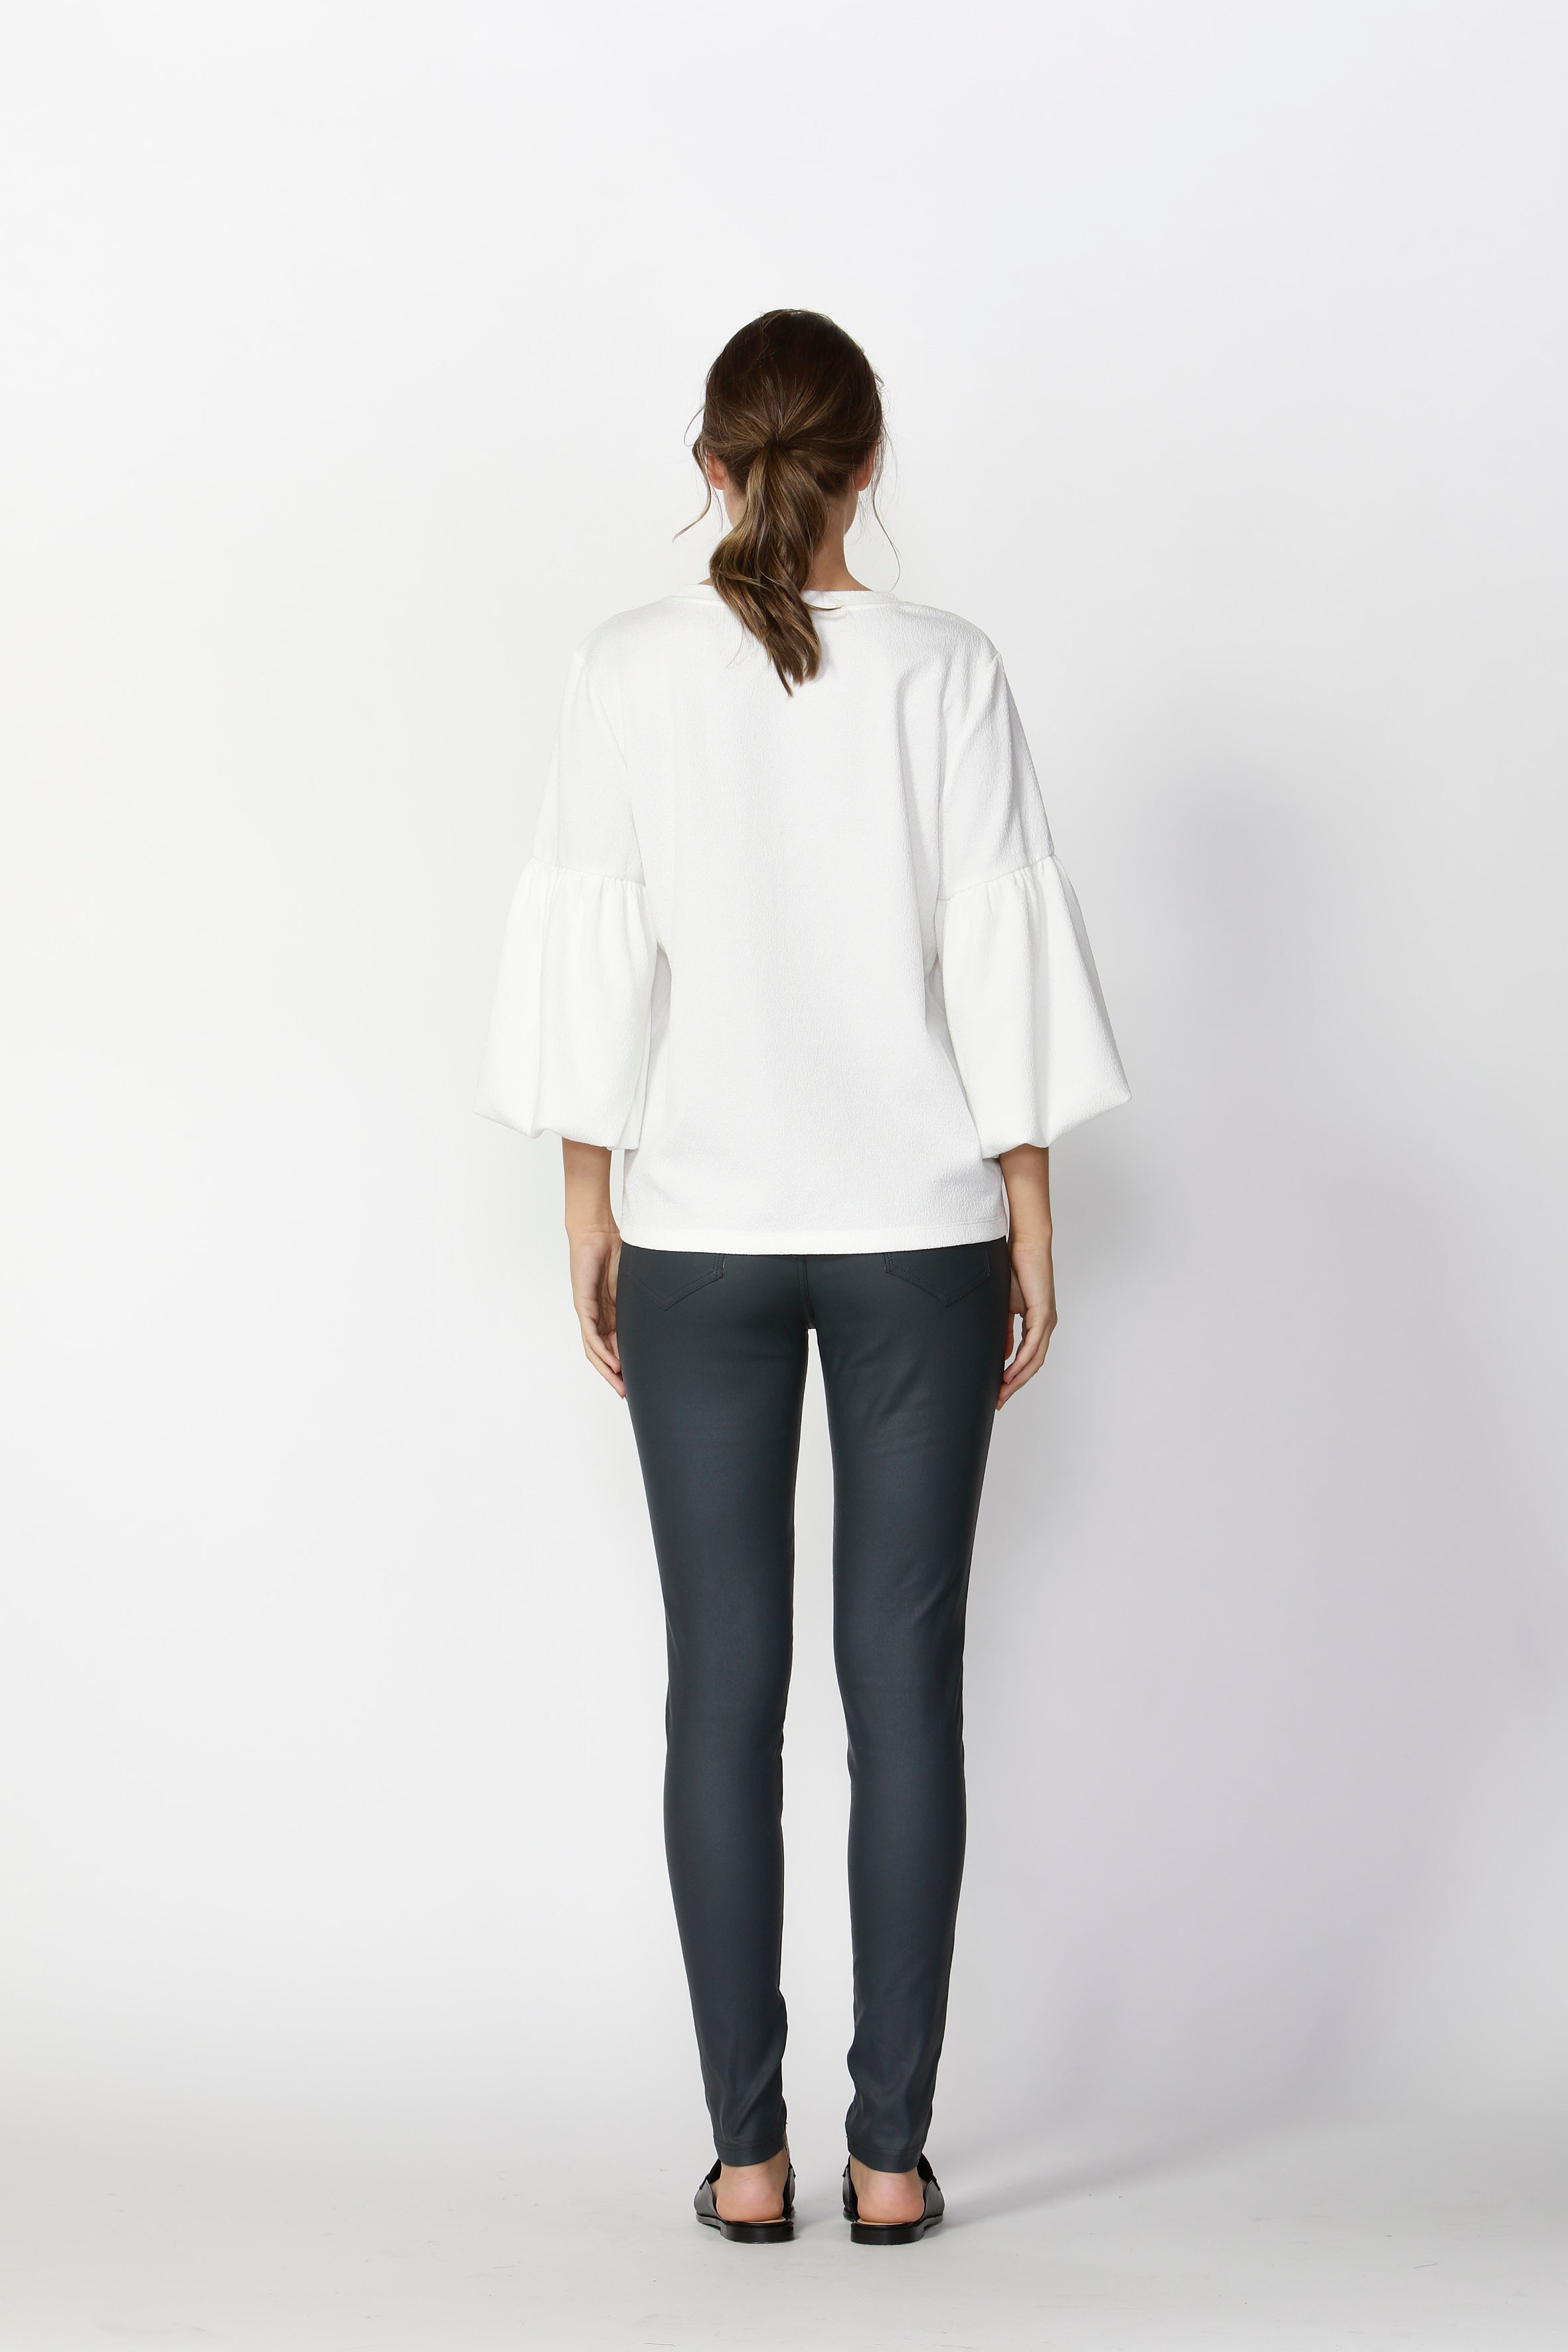 Fate & Becker - Grecia Textured Top (Snow White)